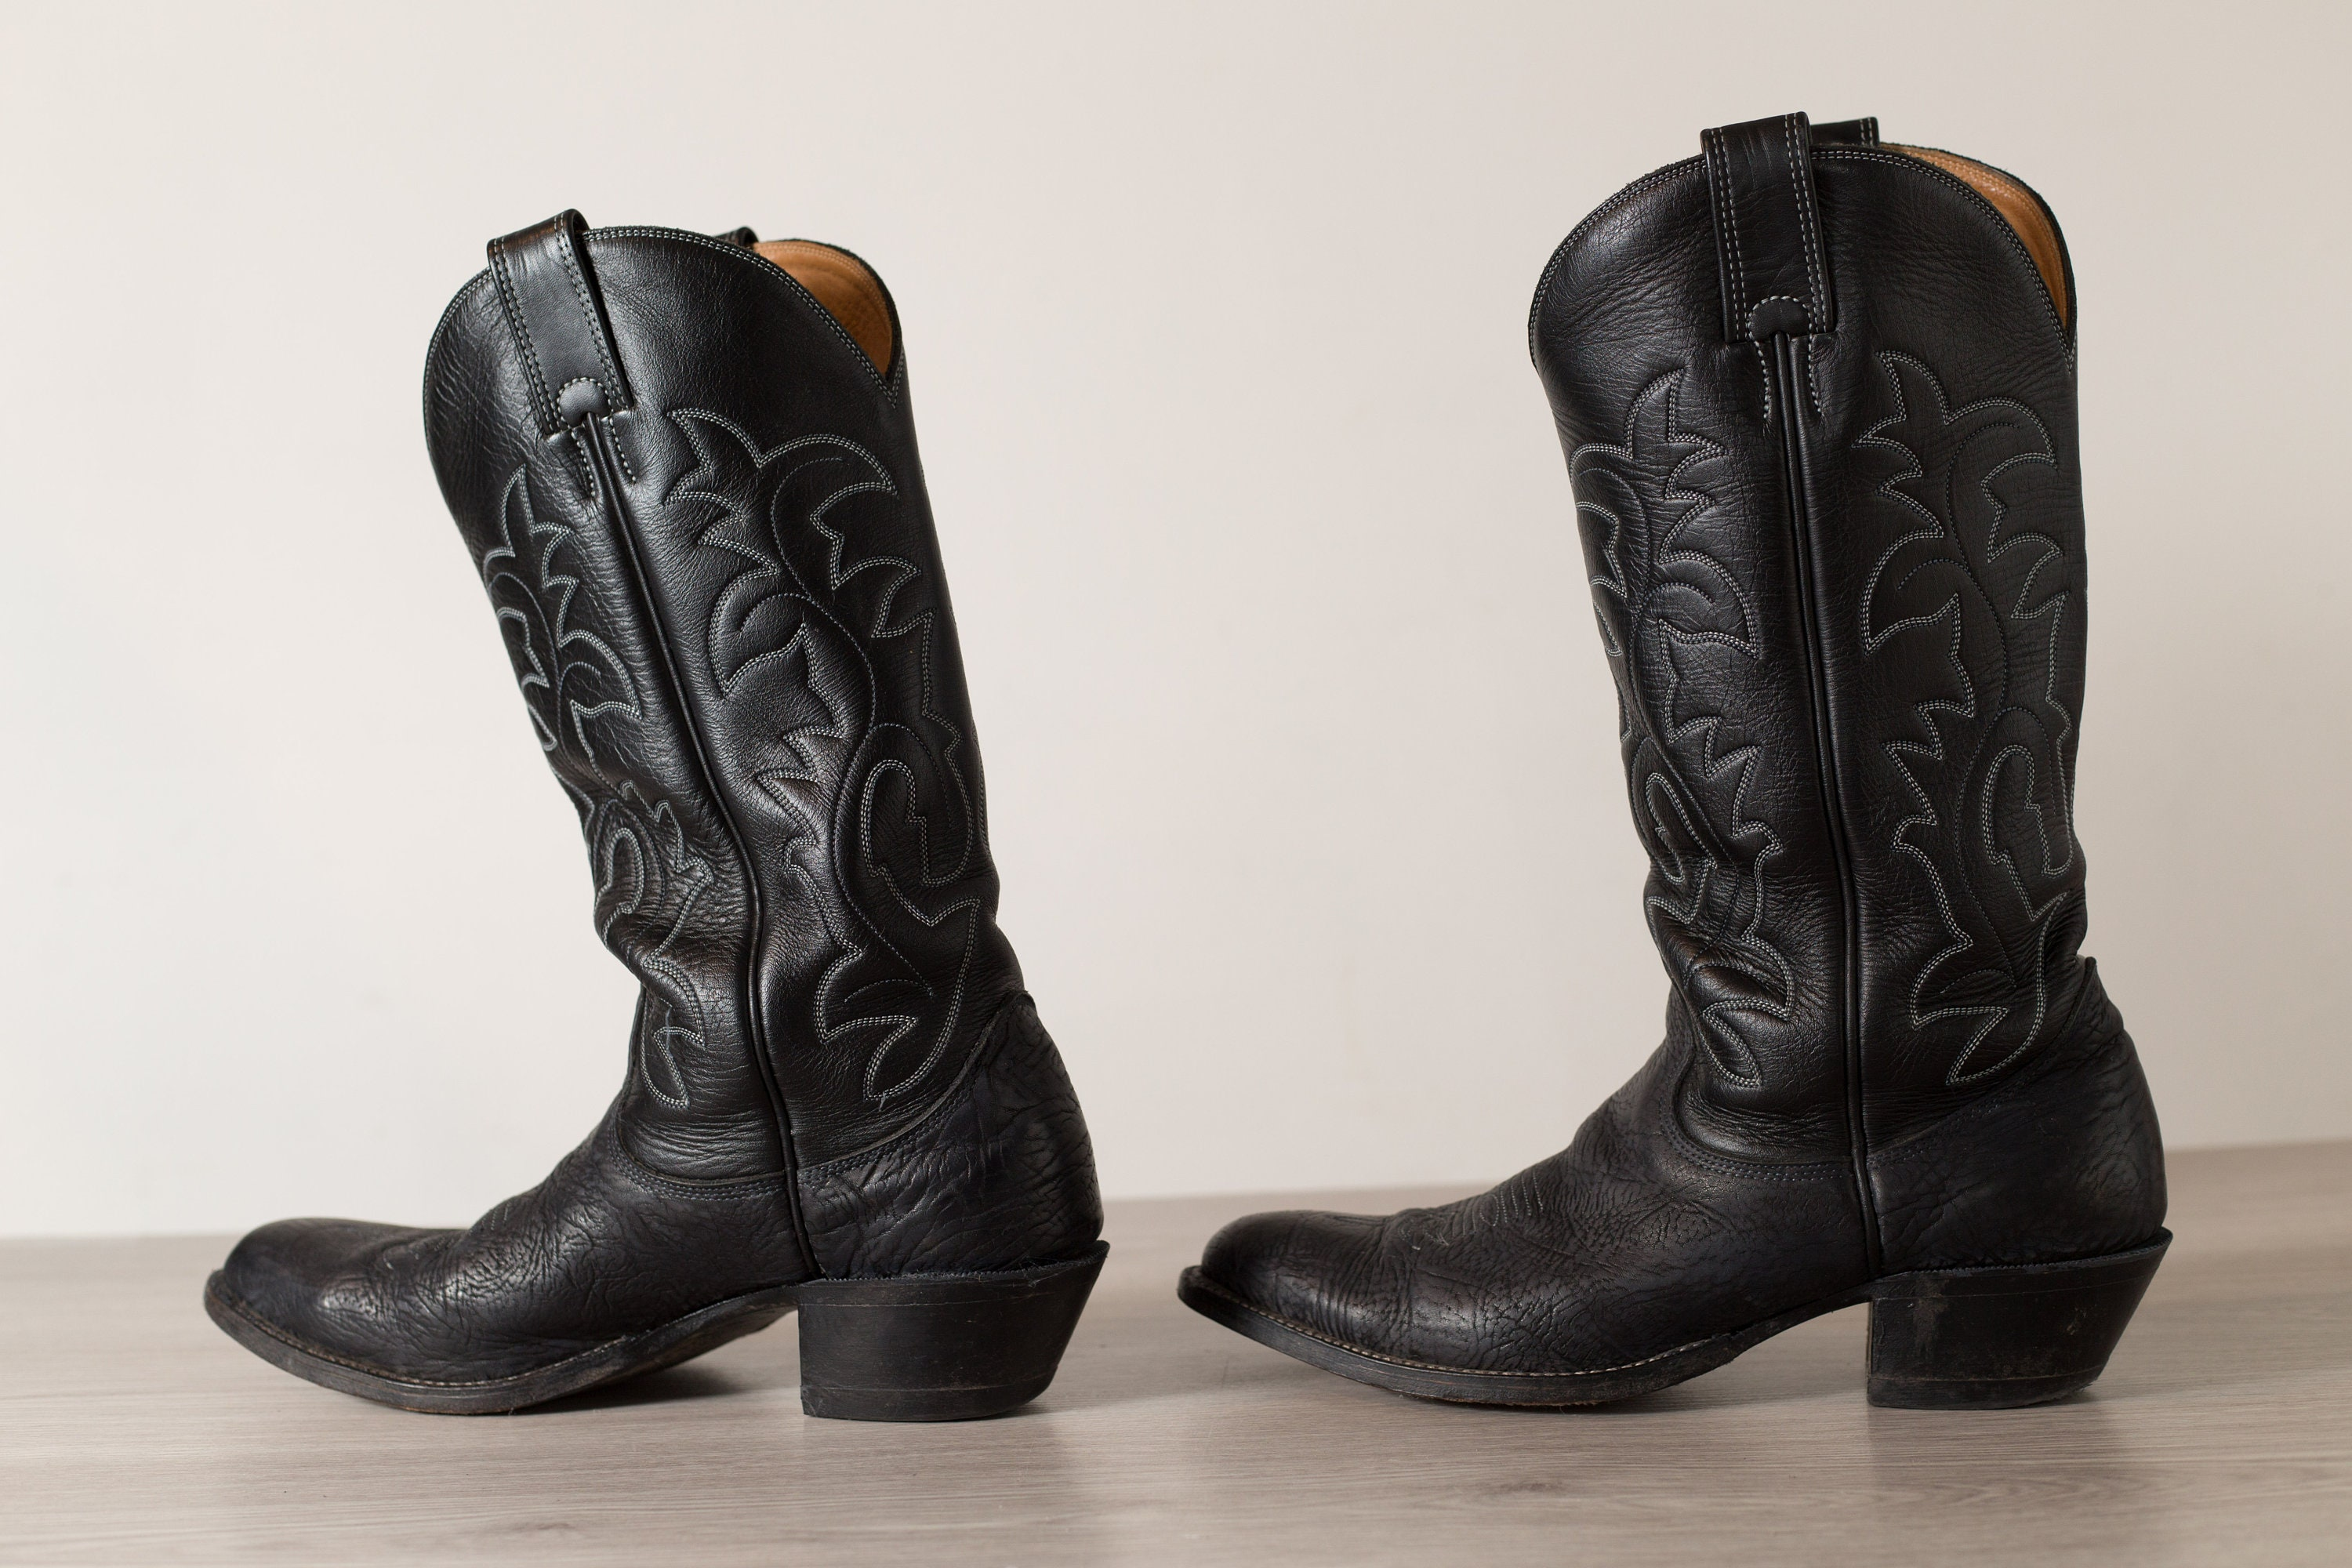 Vintage Cowboy Boots 11b Men S Black Leather Western Horseback Riding Boots Made In Canada Zapatos Zapatos Para Hombre